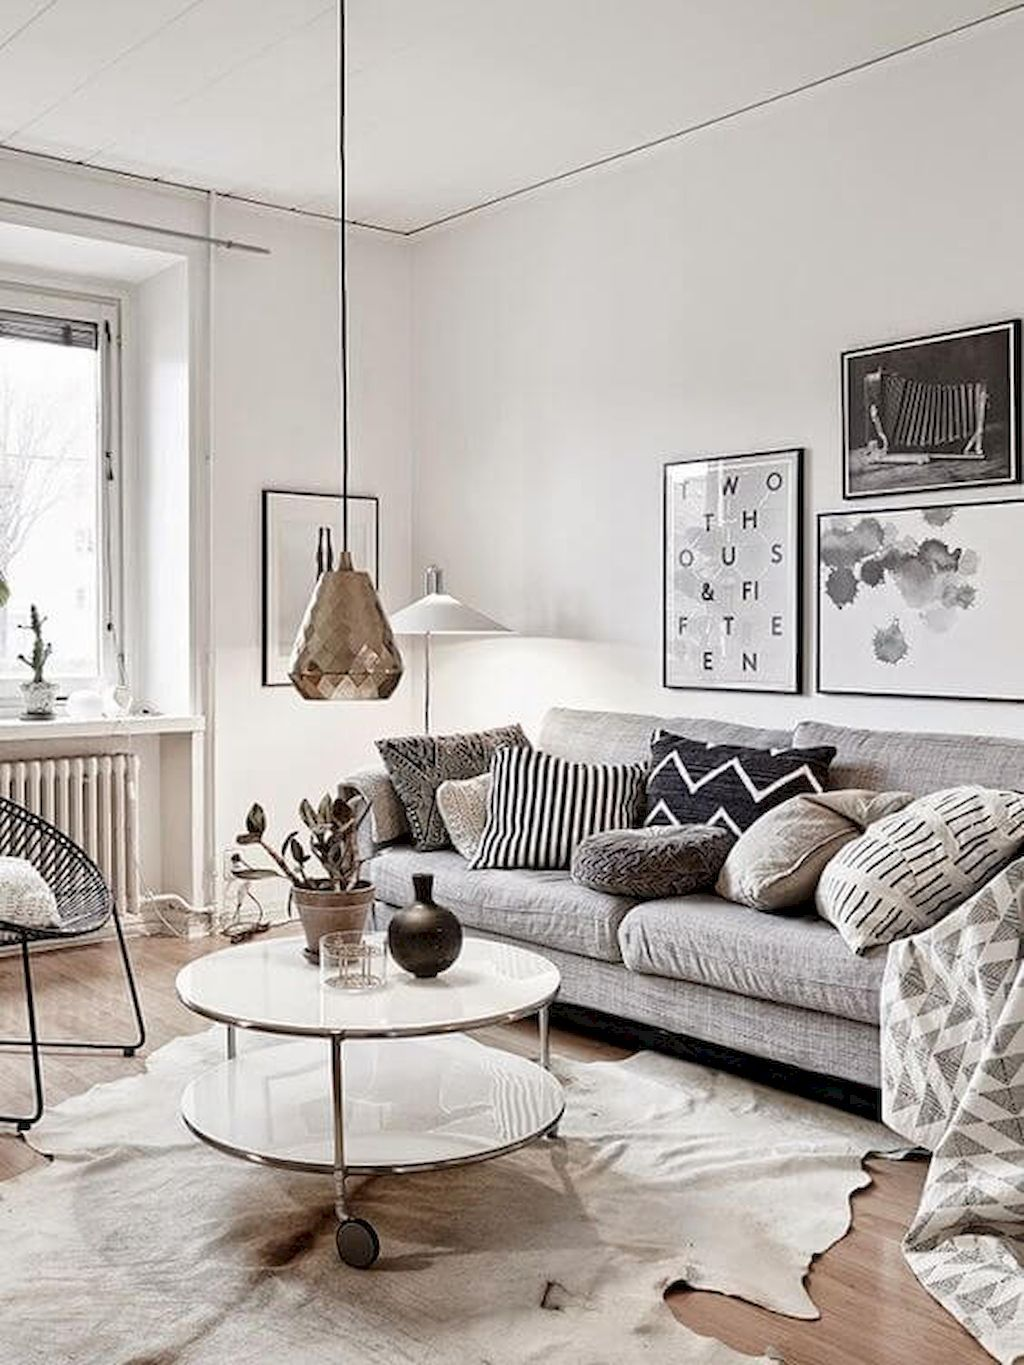 80 Modern Scandinavian Interior Design Ideas | Modern scandinavian ...